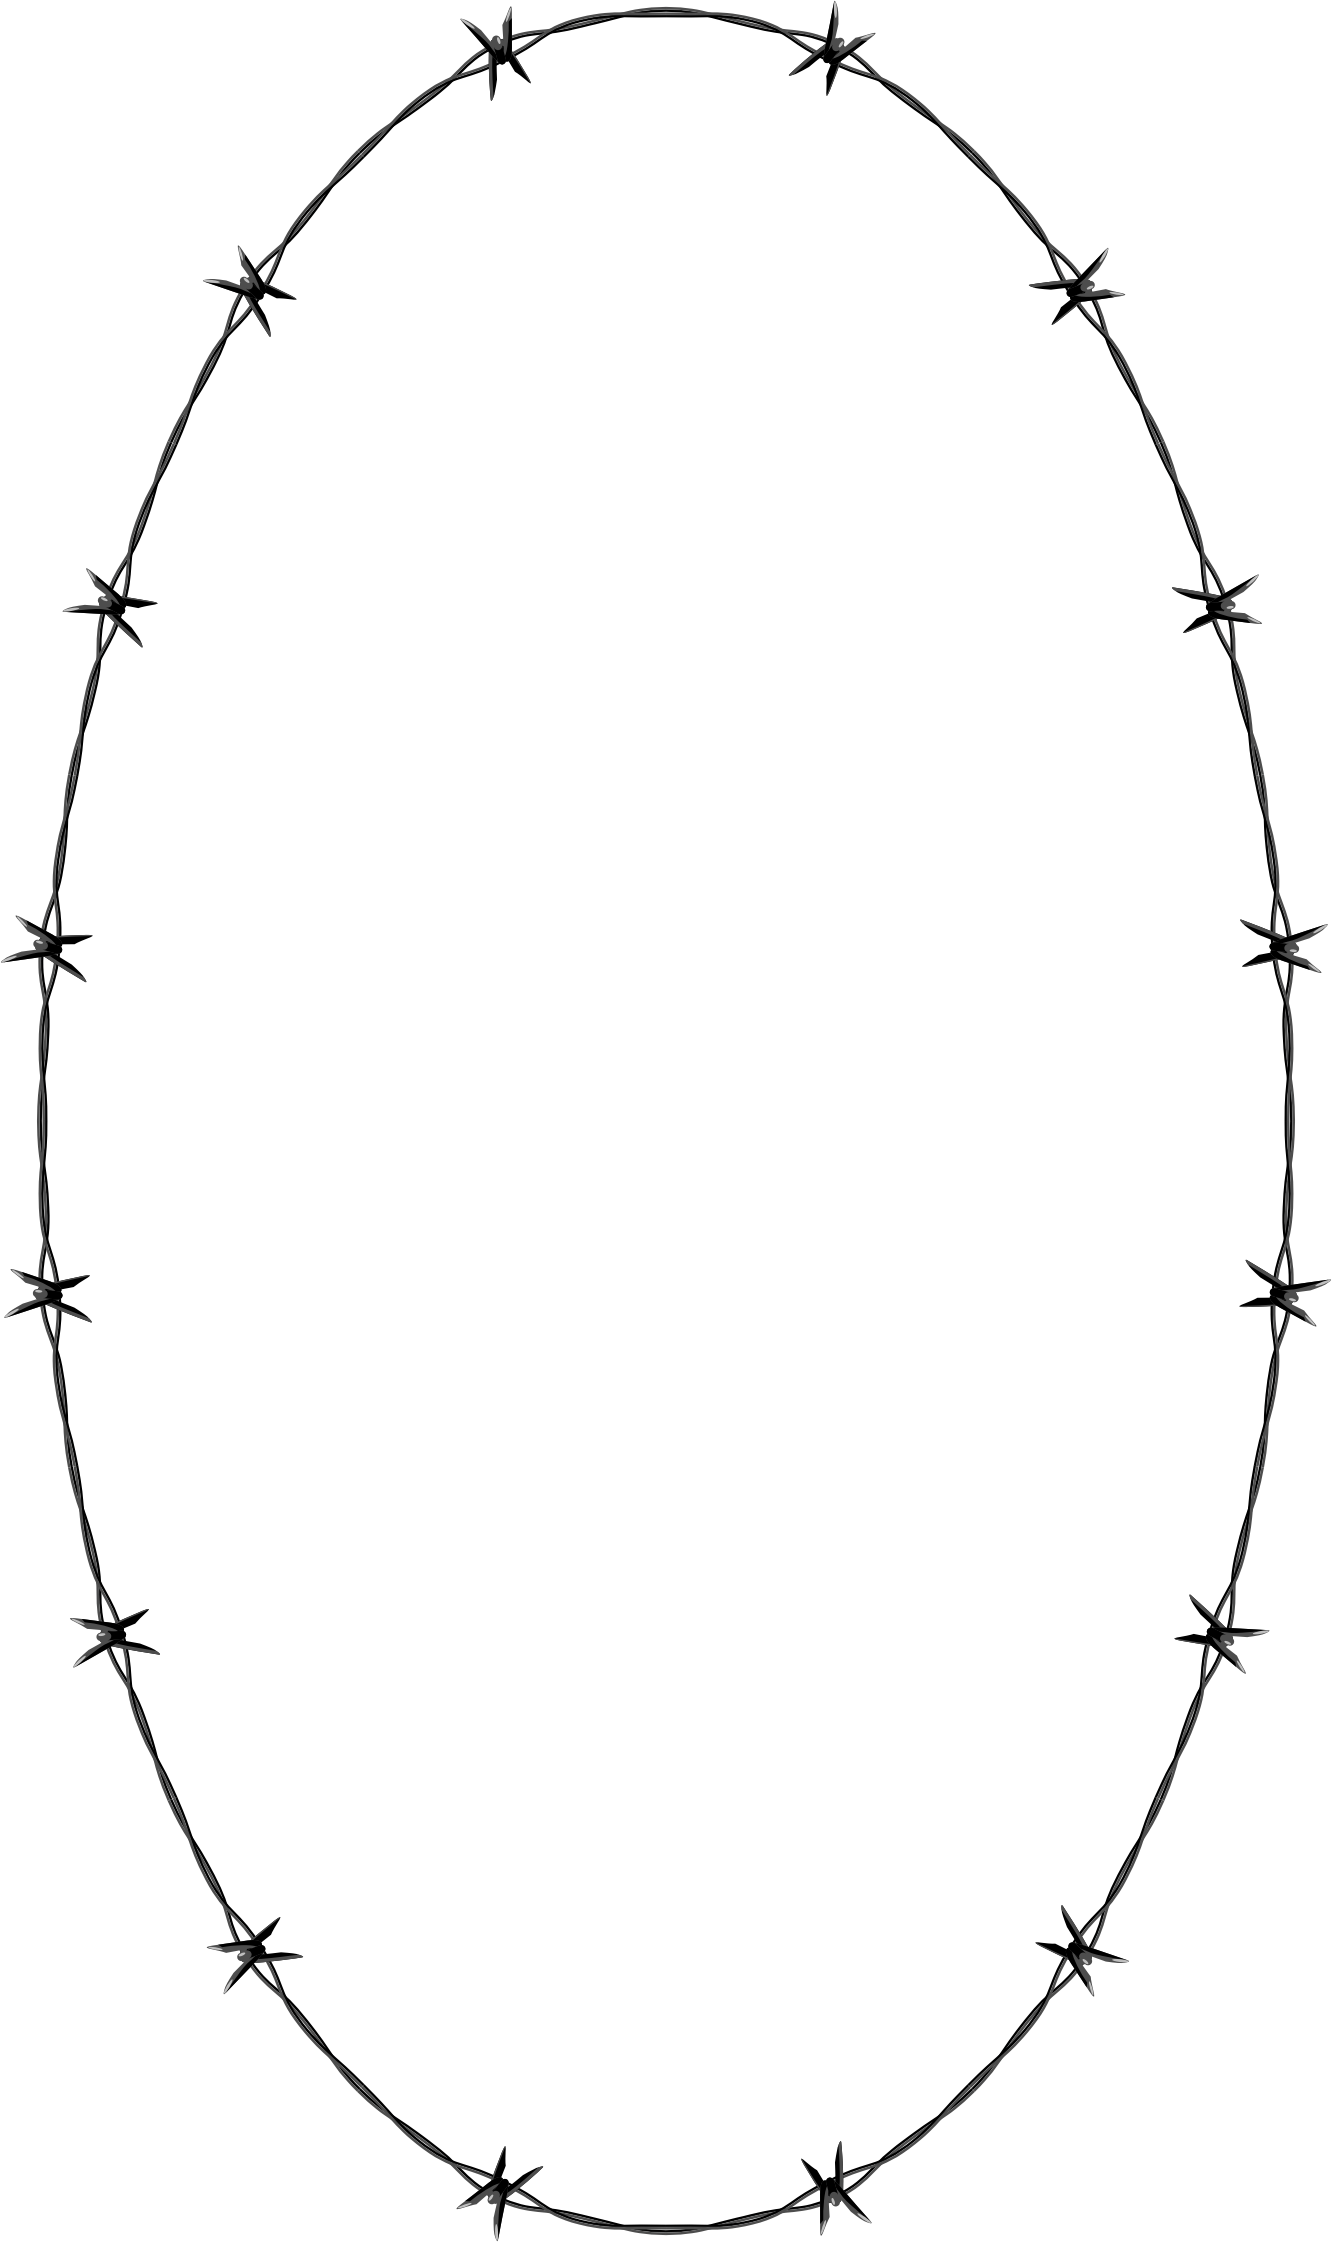 Barbed Wire Ellipse Frame Border by GDJ